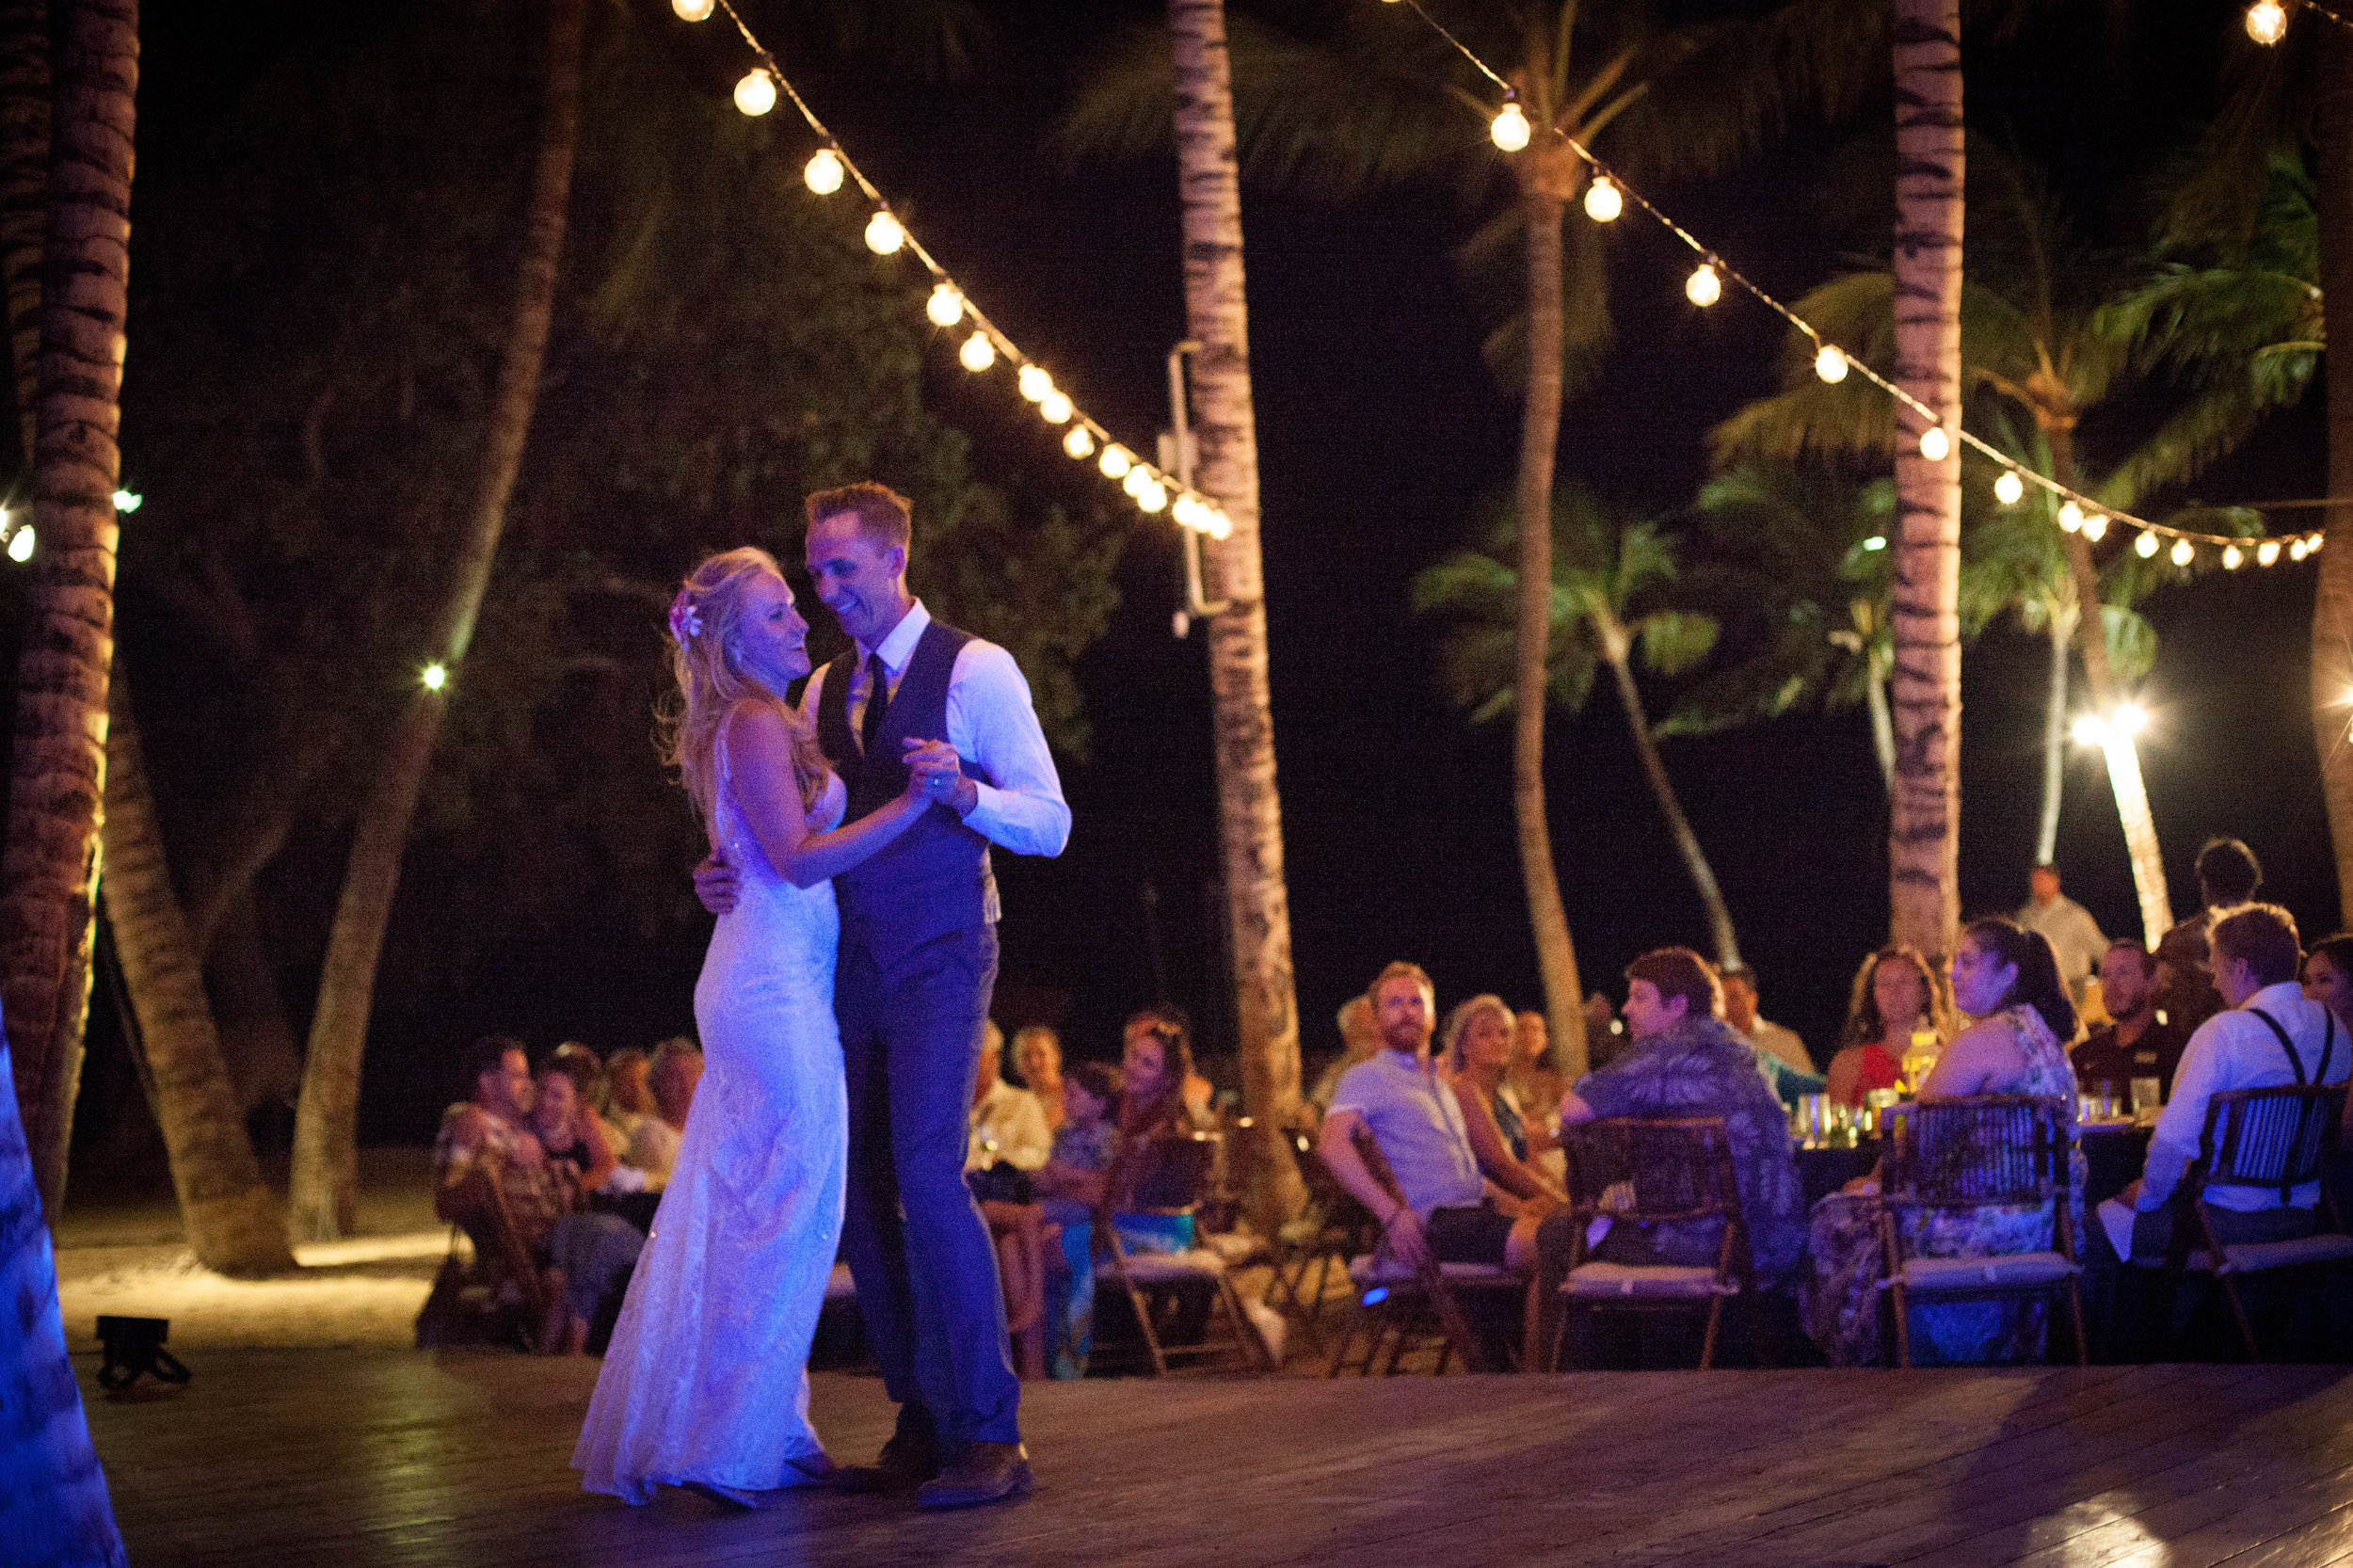 big island hawaii fairmont orchid beach wedding © kelilina photography 20170812210344-1.jpg